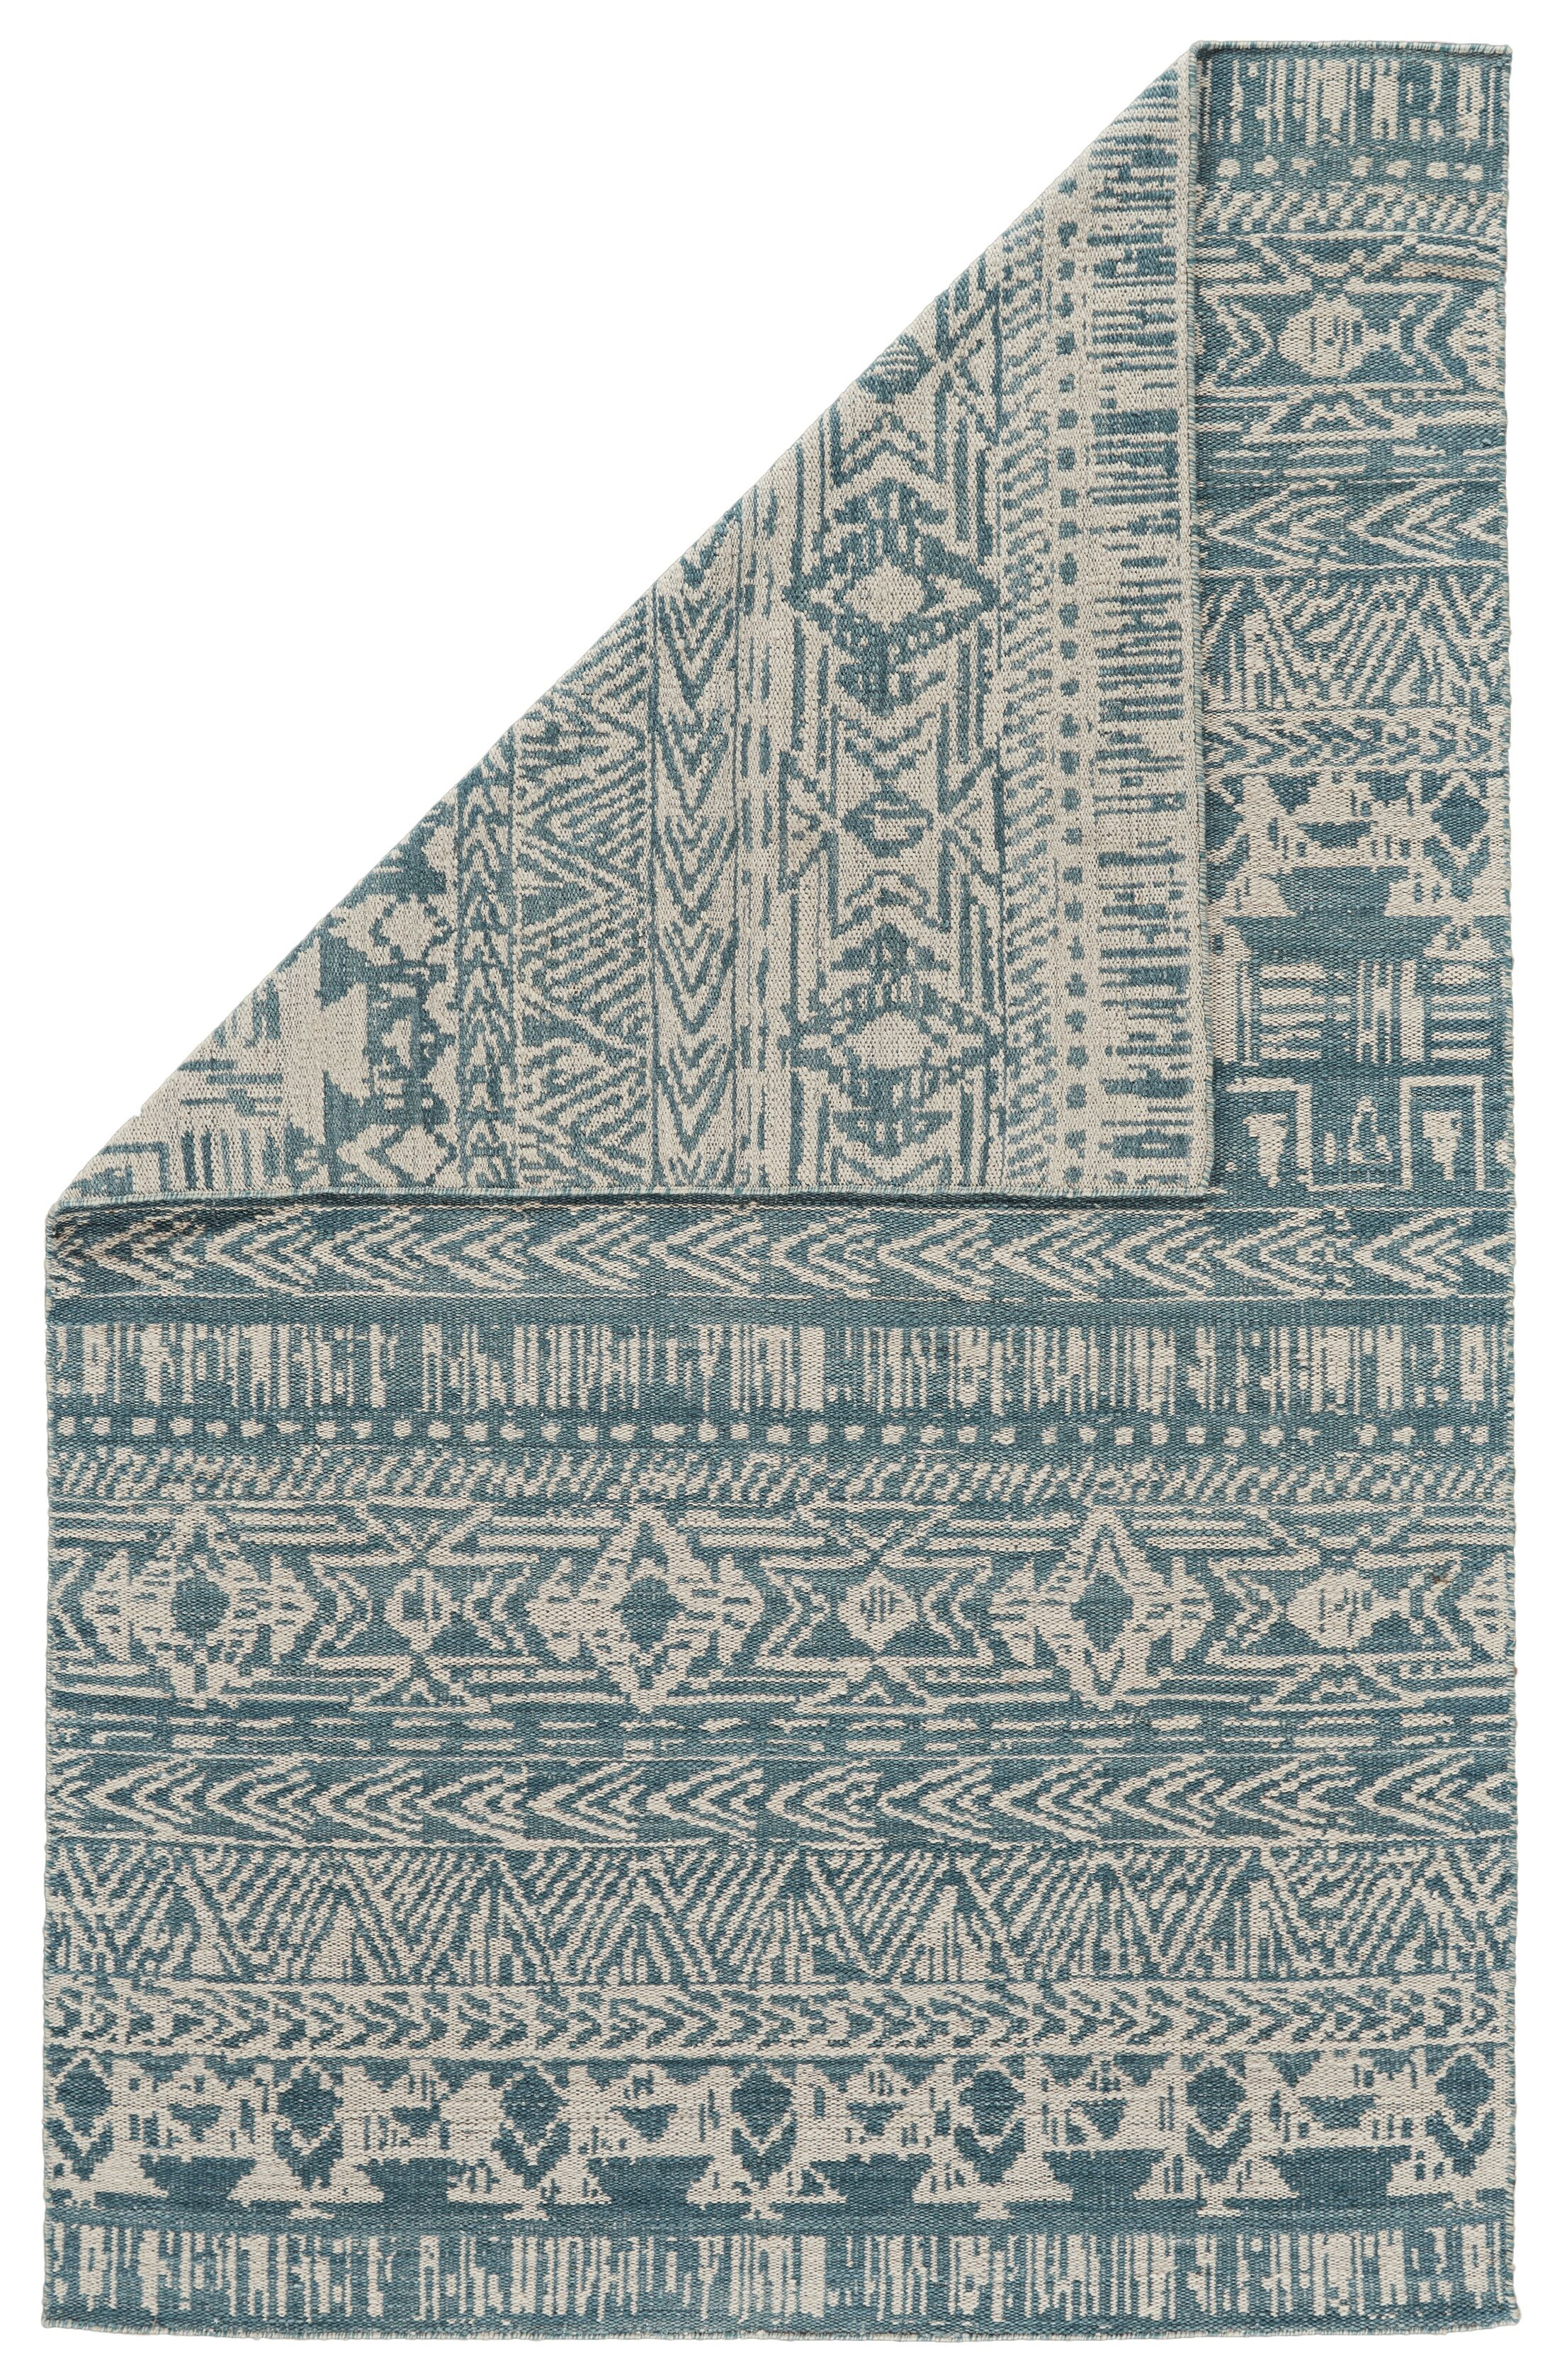 Reiber Hand-Woven Wool Aqua/White Area Rug Rug Size: Rectangle 8' x 11'